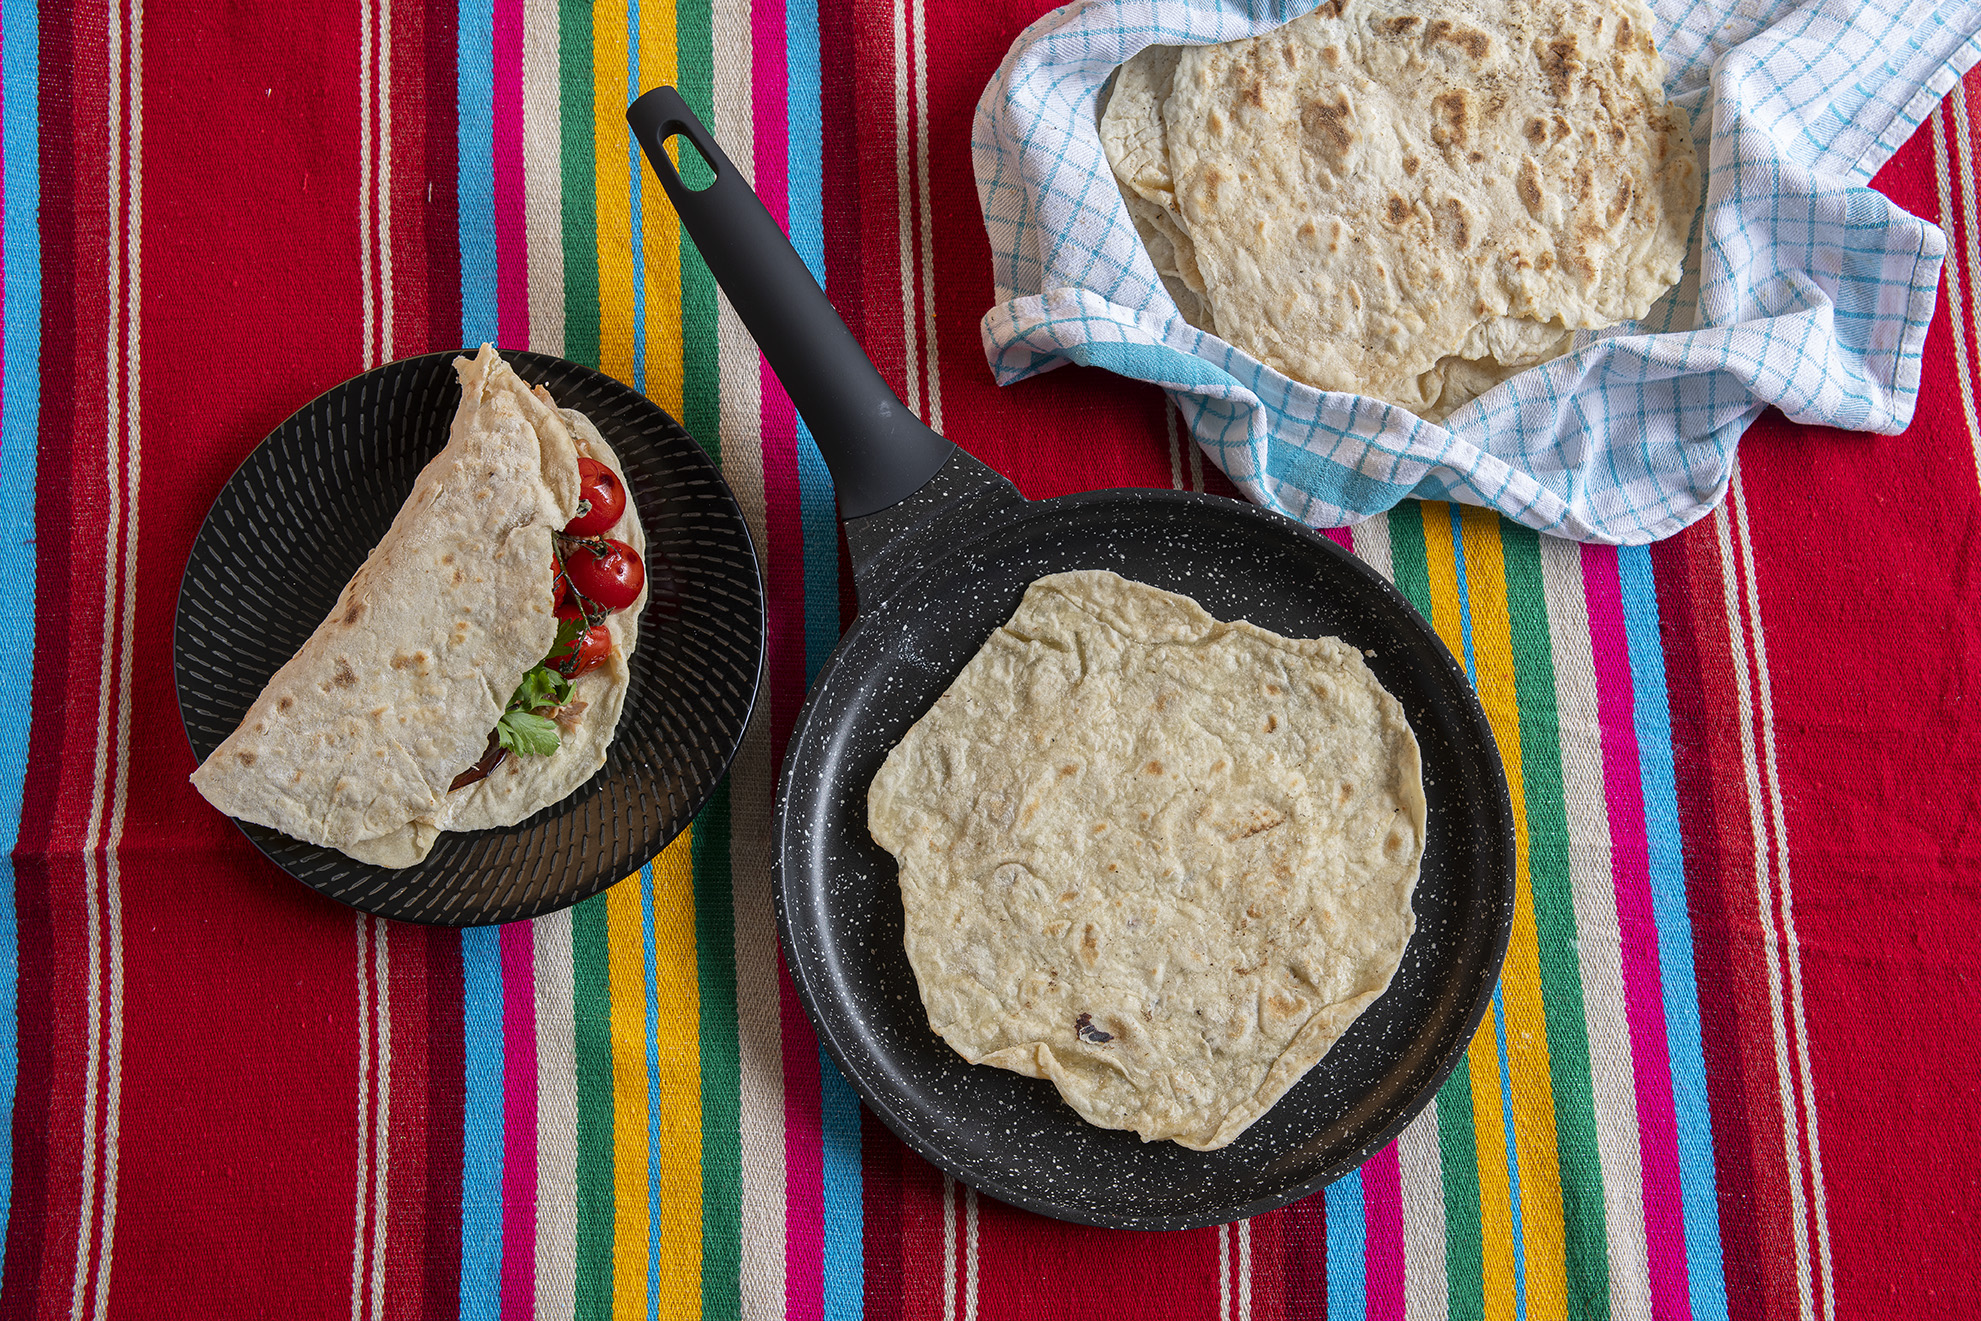 Tortilla's/wraps